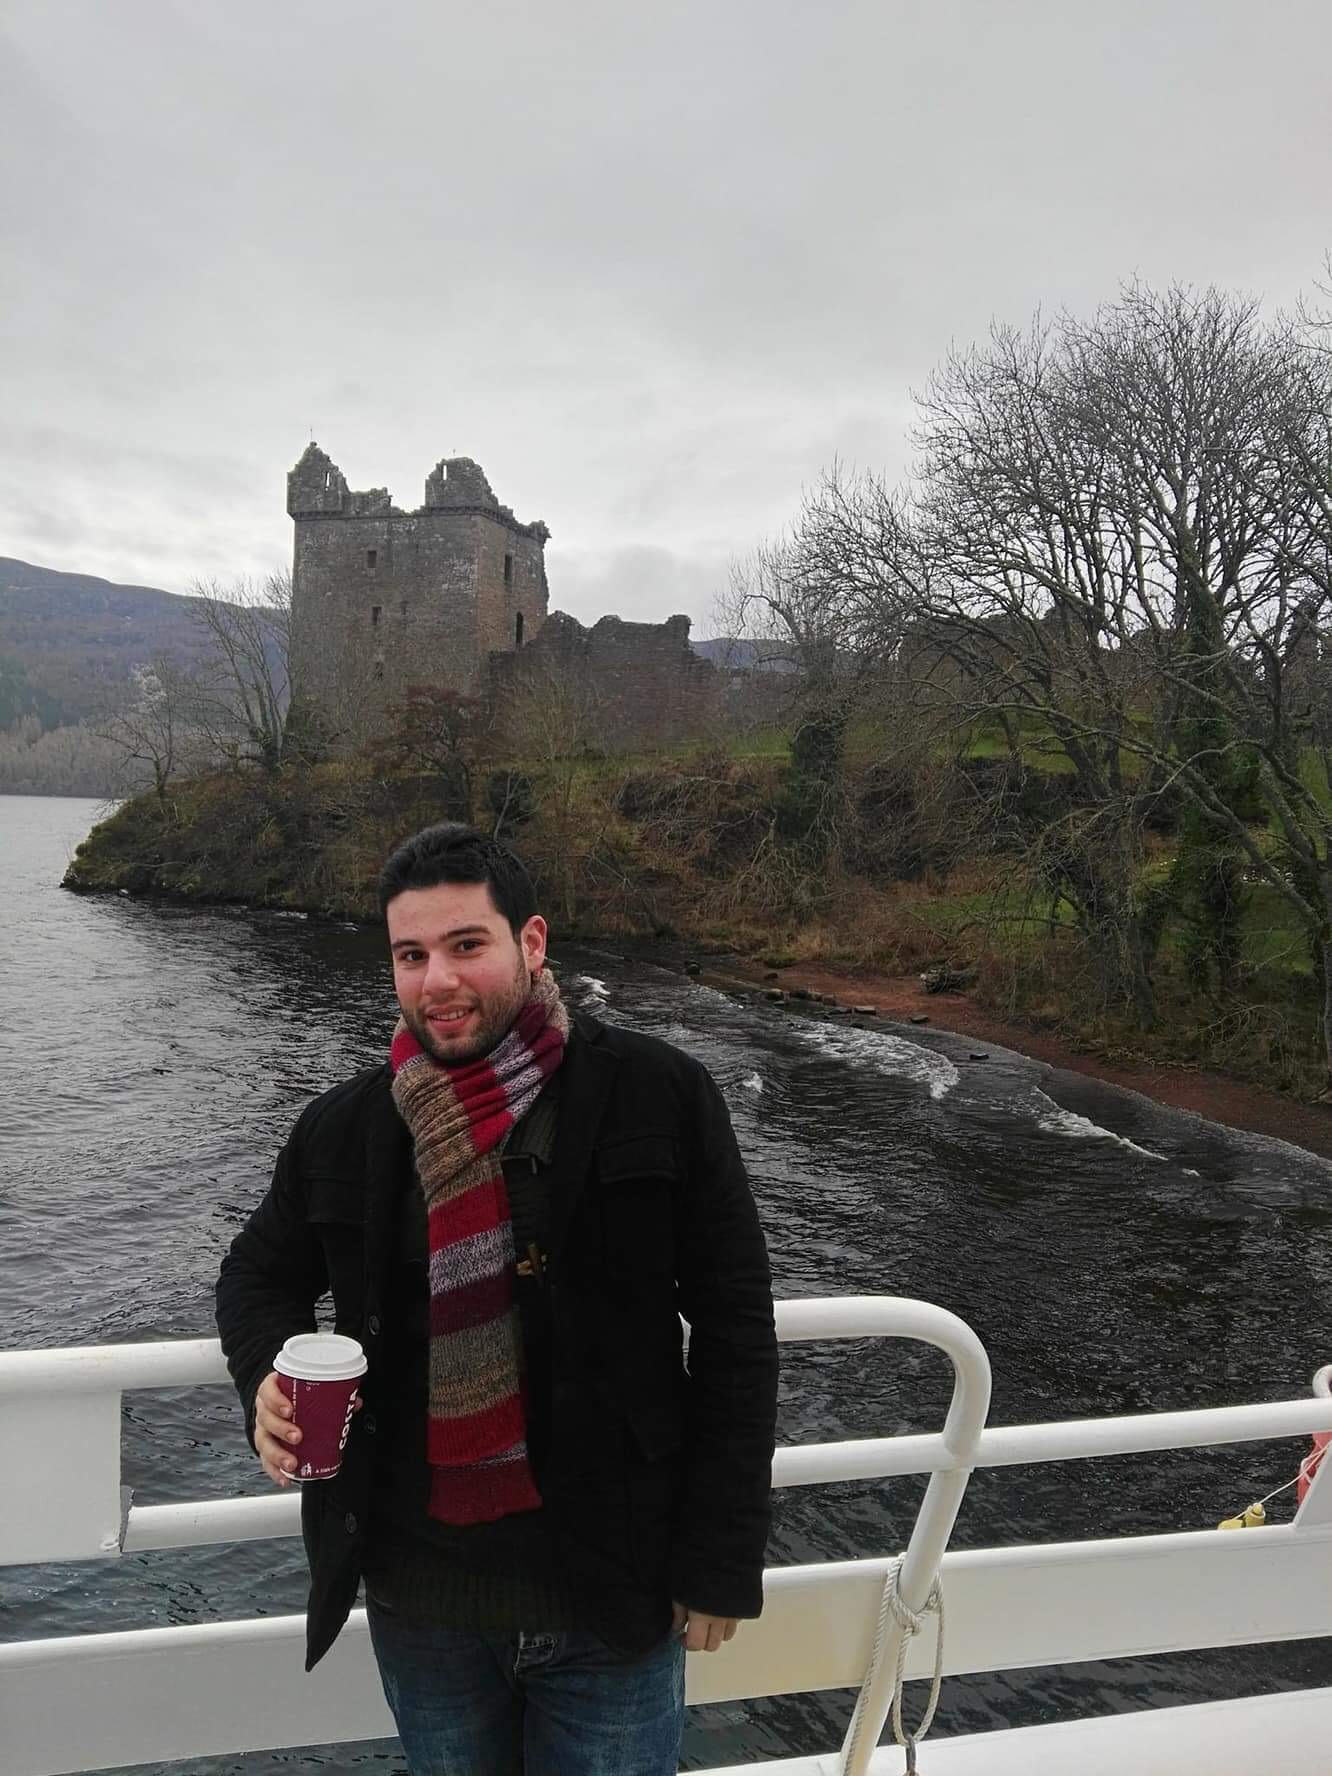 While in Loch Ness